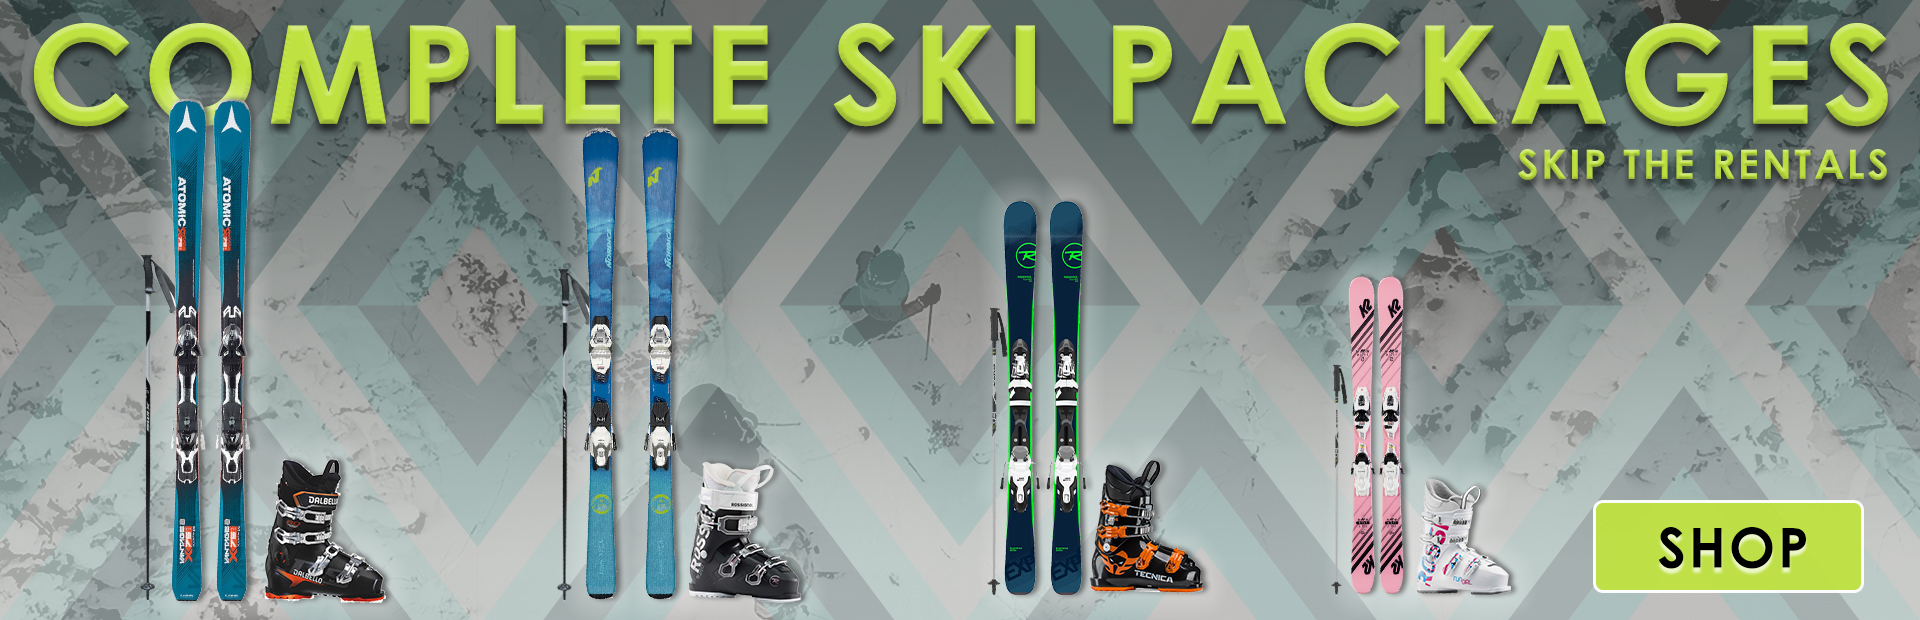 Full Ski Package Slider Banner